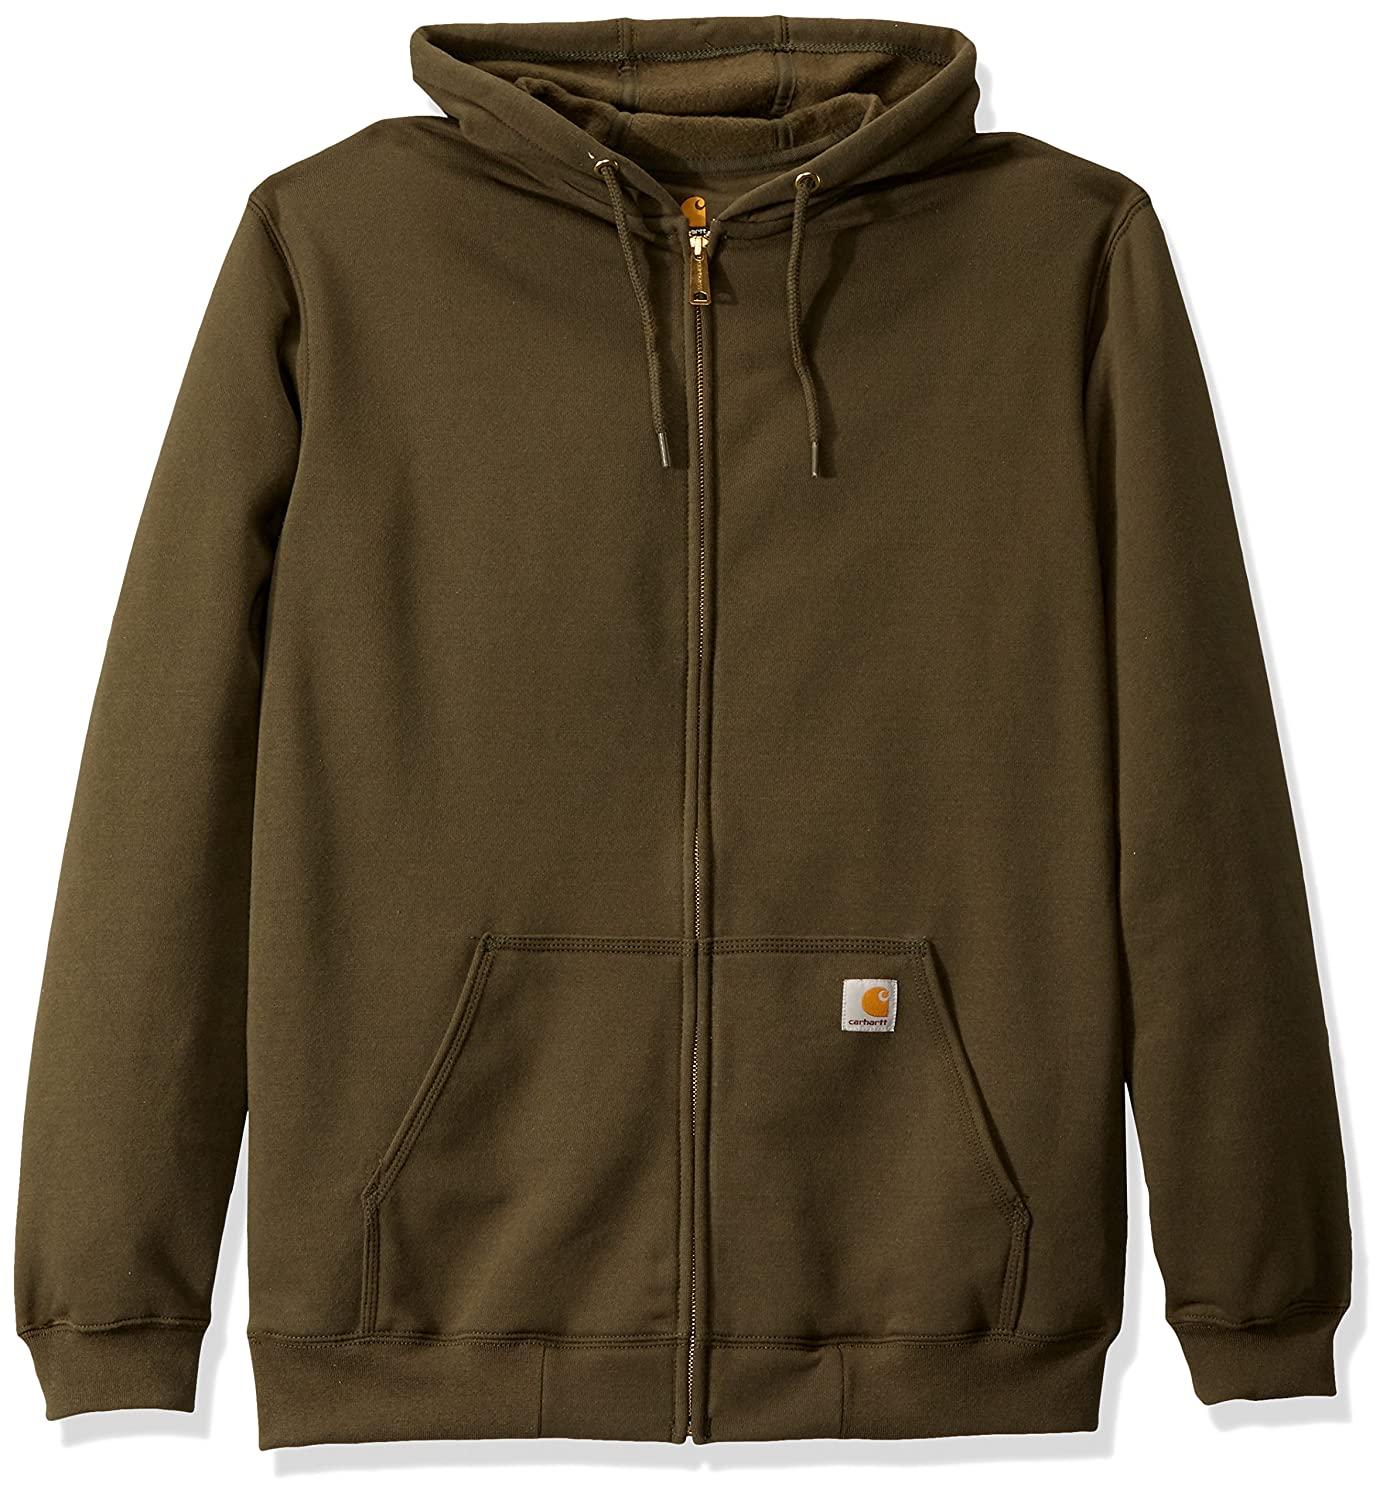 Carhartt Men's Big & Tall Midweight Zip Front Hooded Sweatshirt K122 K122BT